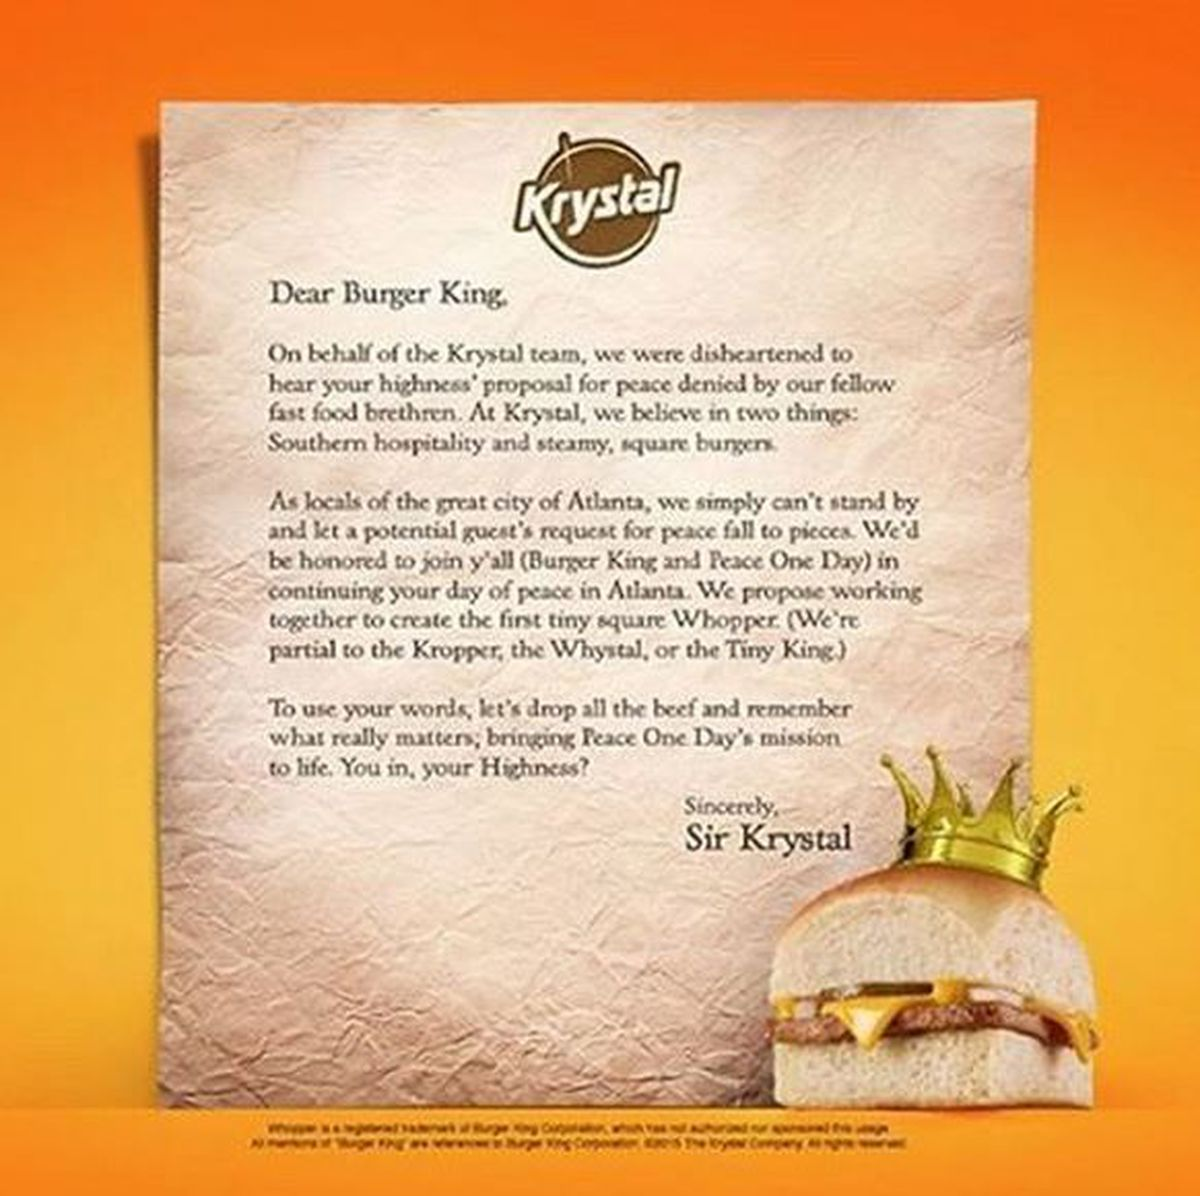 Krystal proposes peace treaty with Burger King